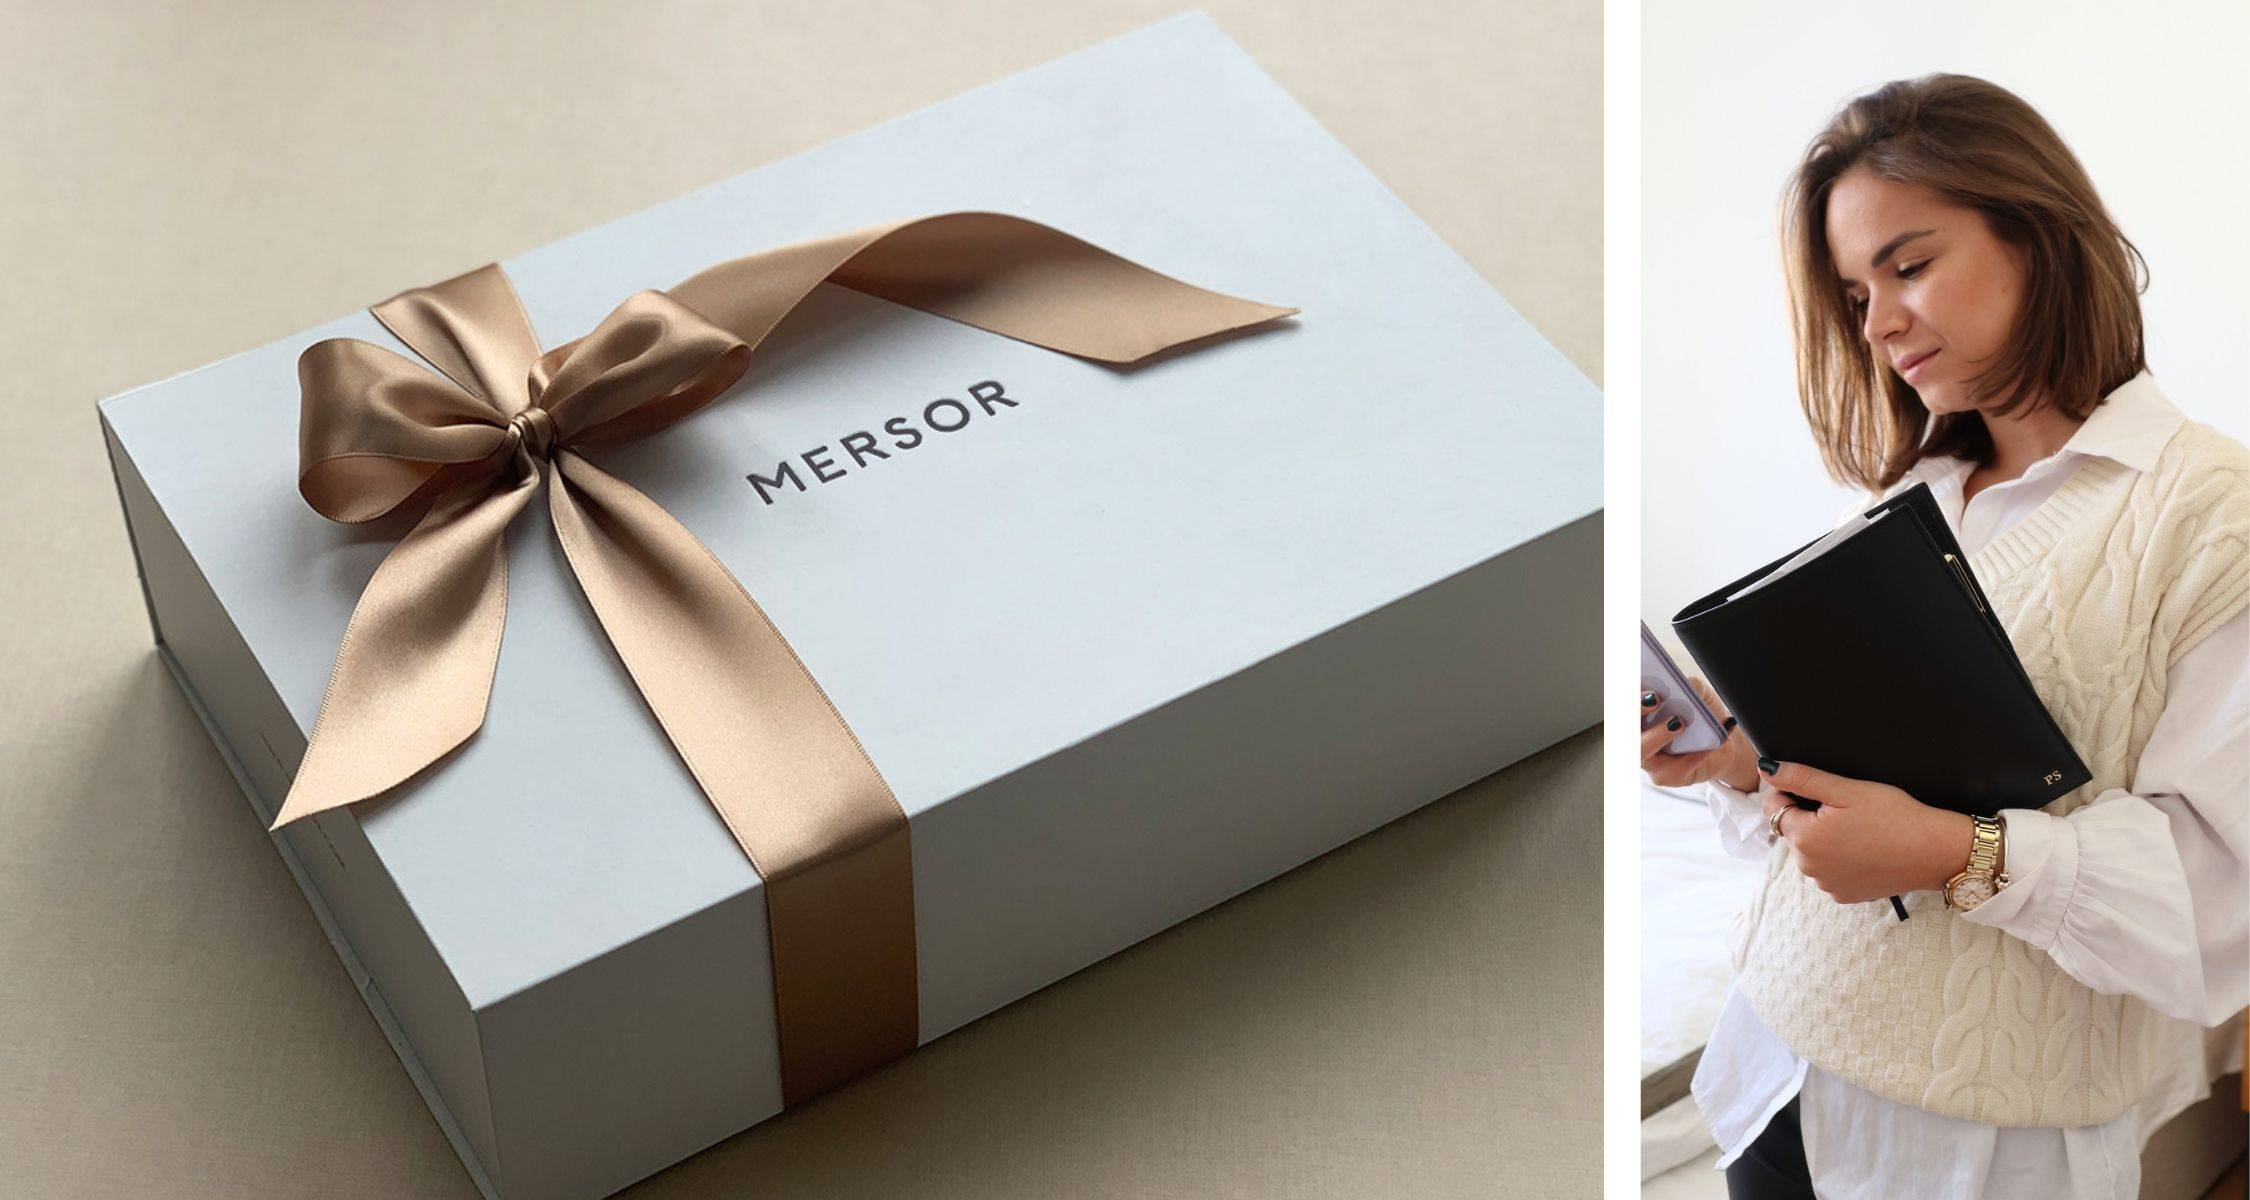 Discover the MERSOR gift world